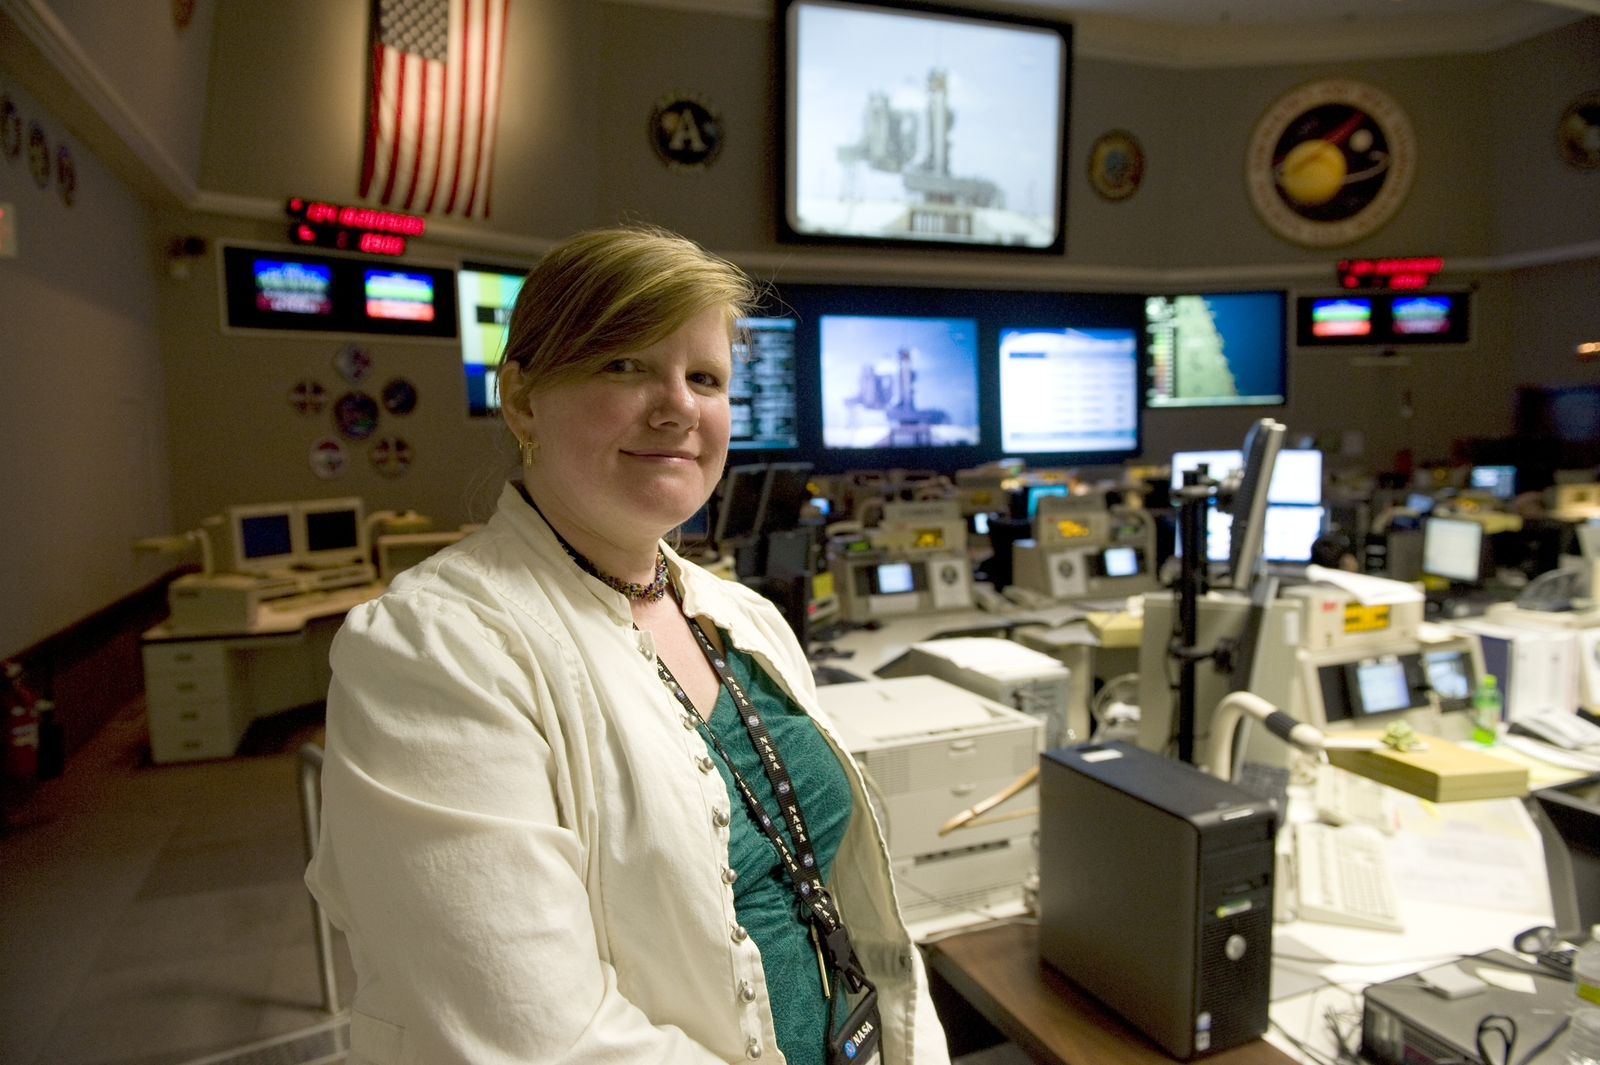 SPACE SHUTTLE STS-132 MISSION AT GSFC